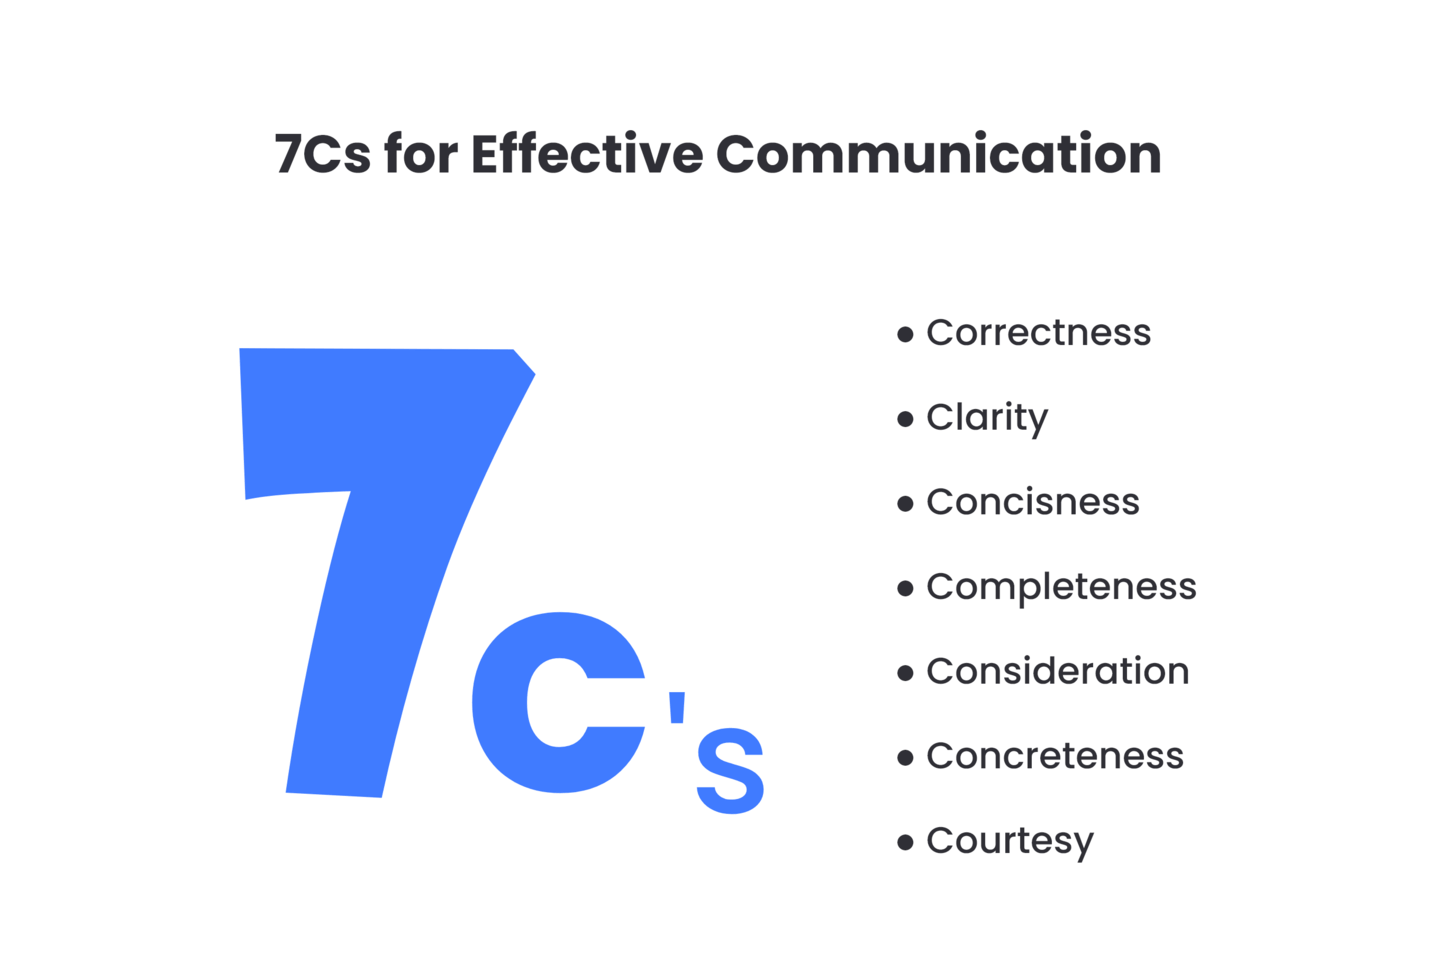 7Cs of Effective Workplace Communication